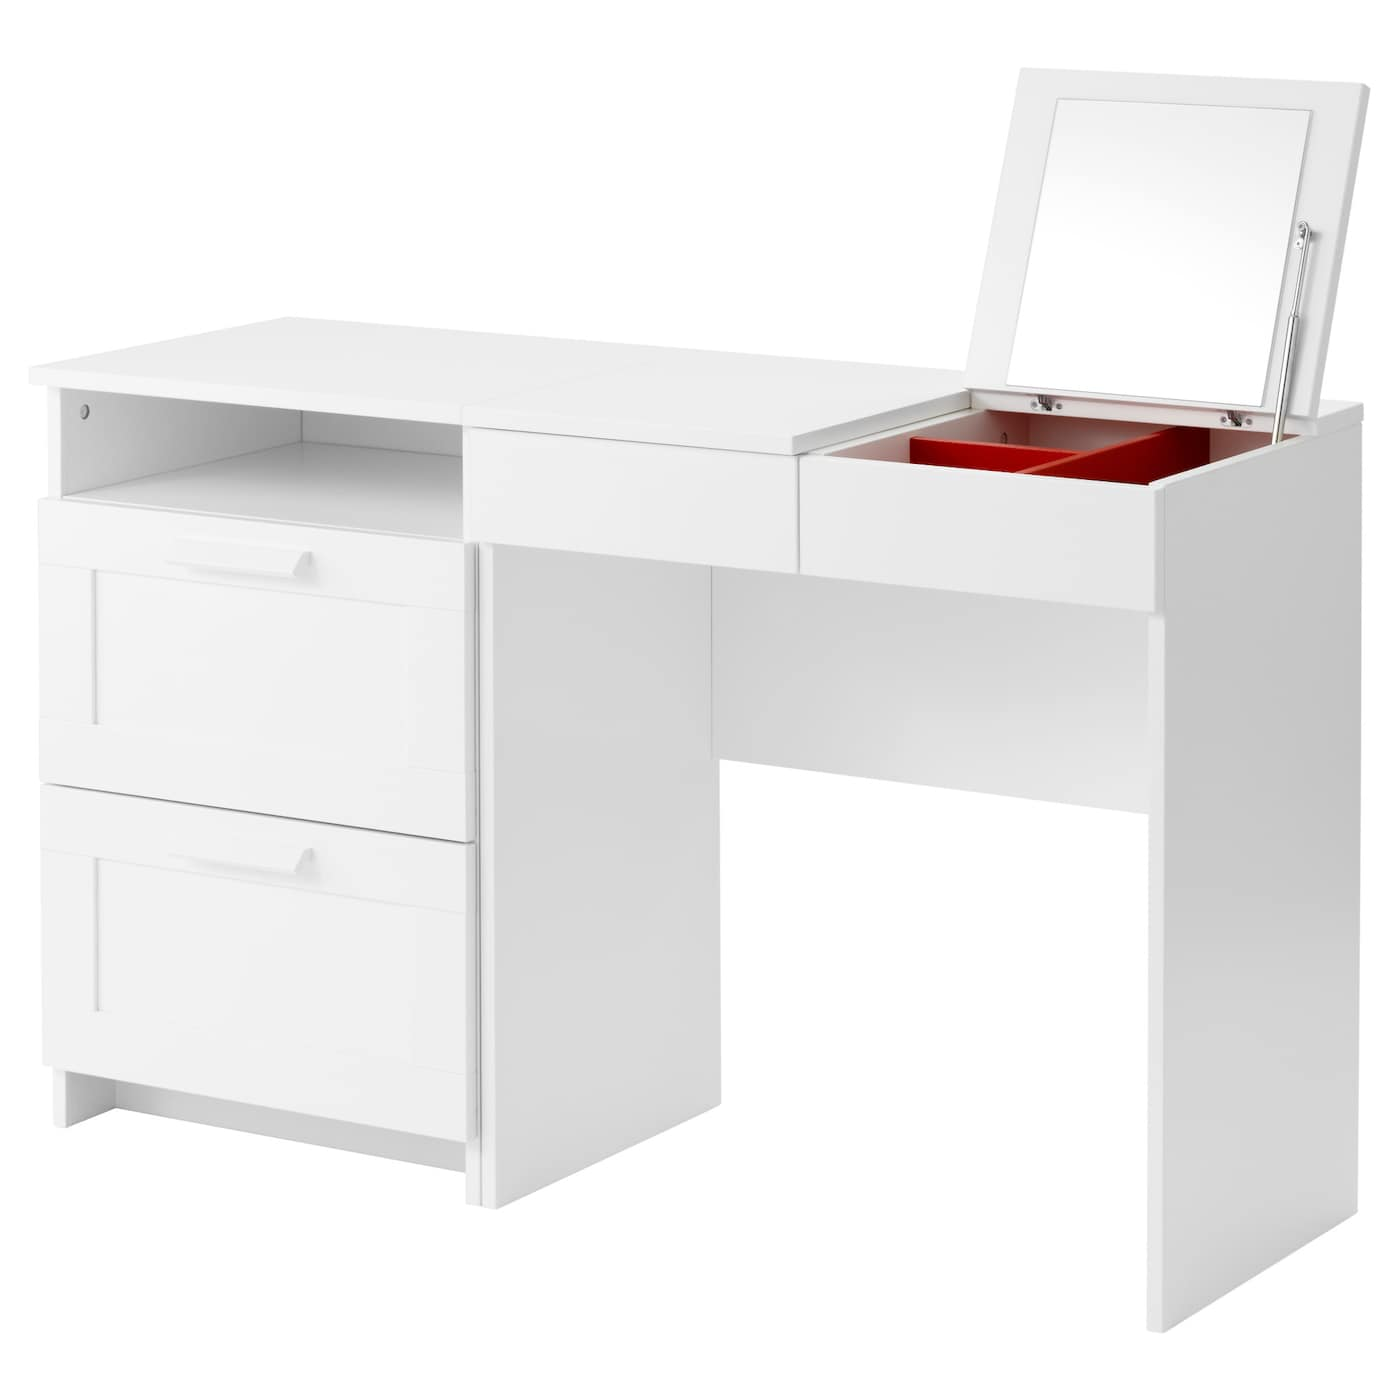 Brimnes coiffeuse commode 2 tiroirs blanc ikea for Commode miroir ikea